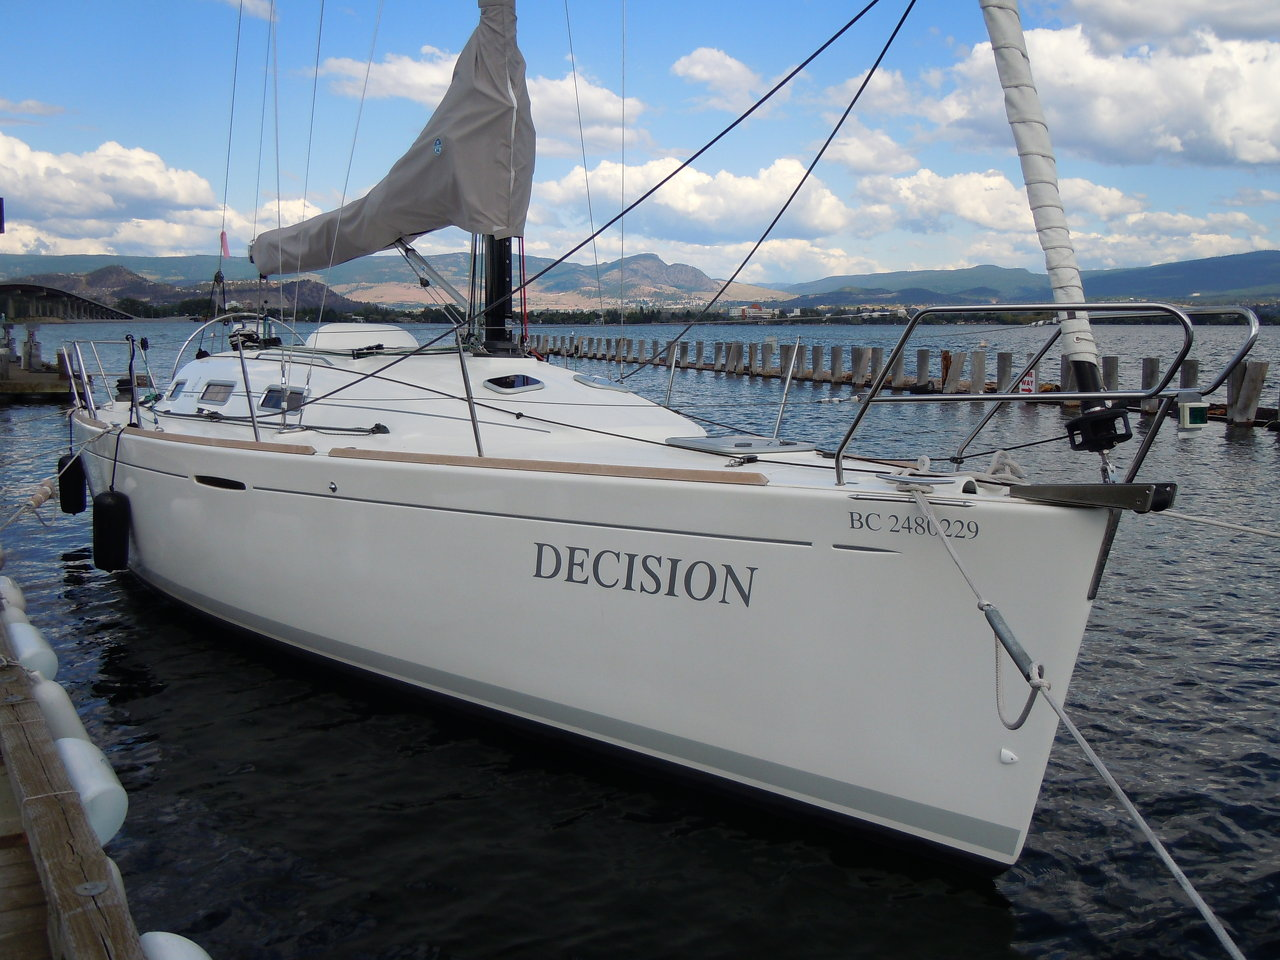 Decision at dock